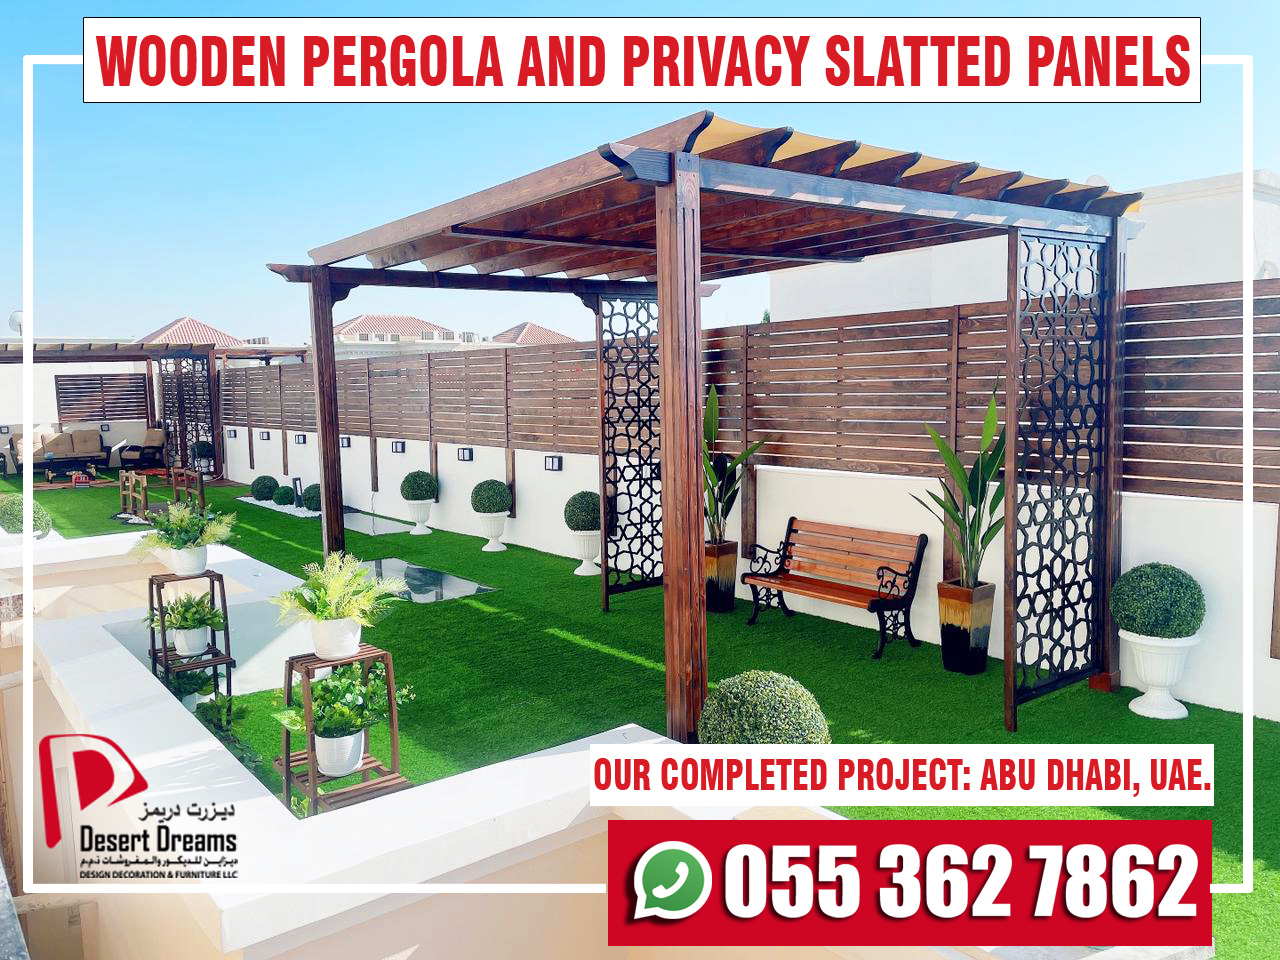 Wooden Pergola and Privacy Slatted Fences in UAE.jpg